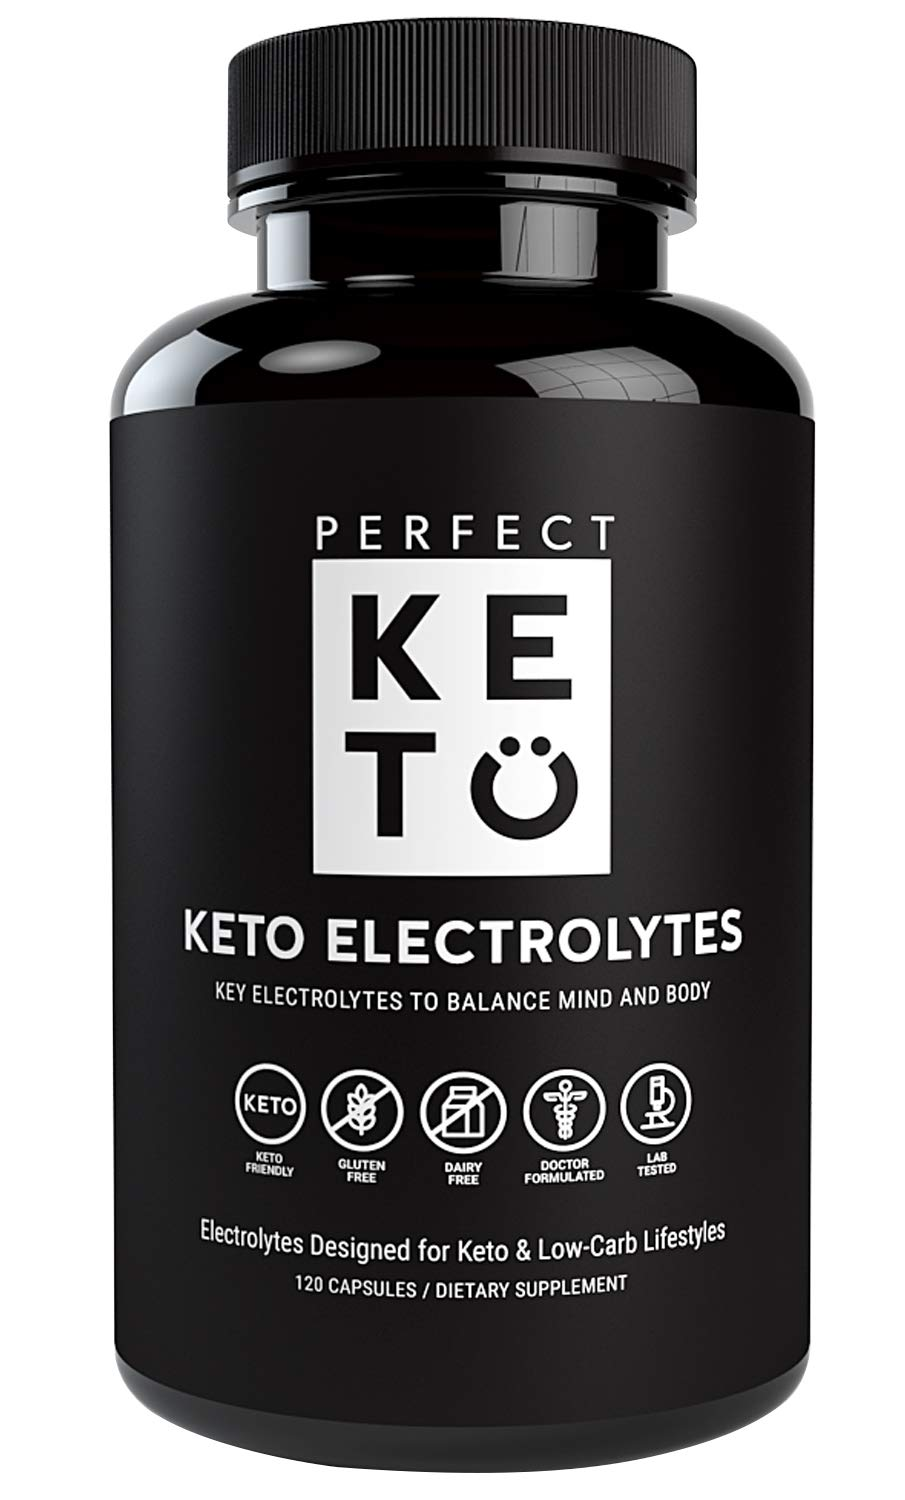 Perfect Keto Flu Electrolyte Supplement: Electrolytes Capsules for Low Carb Diet or Ketogenic Diet to Balance Mind & Body. Energy Supplements, Sodium, Potassium, Magnesium (1 Bottle, 120 Count) by Perfect Keto